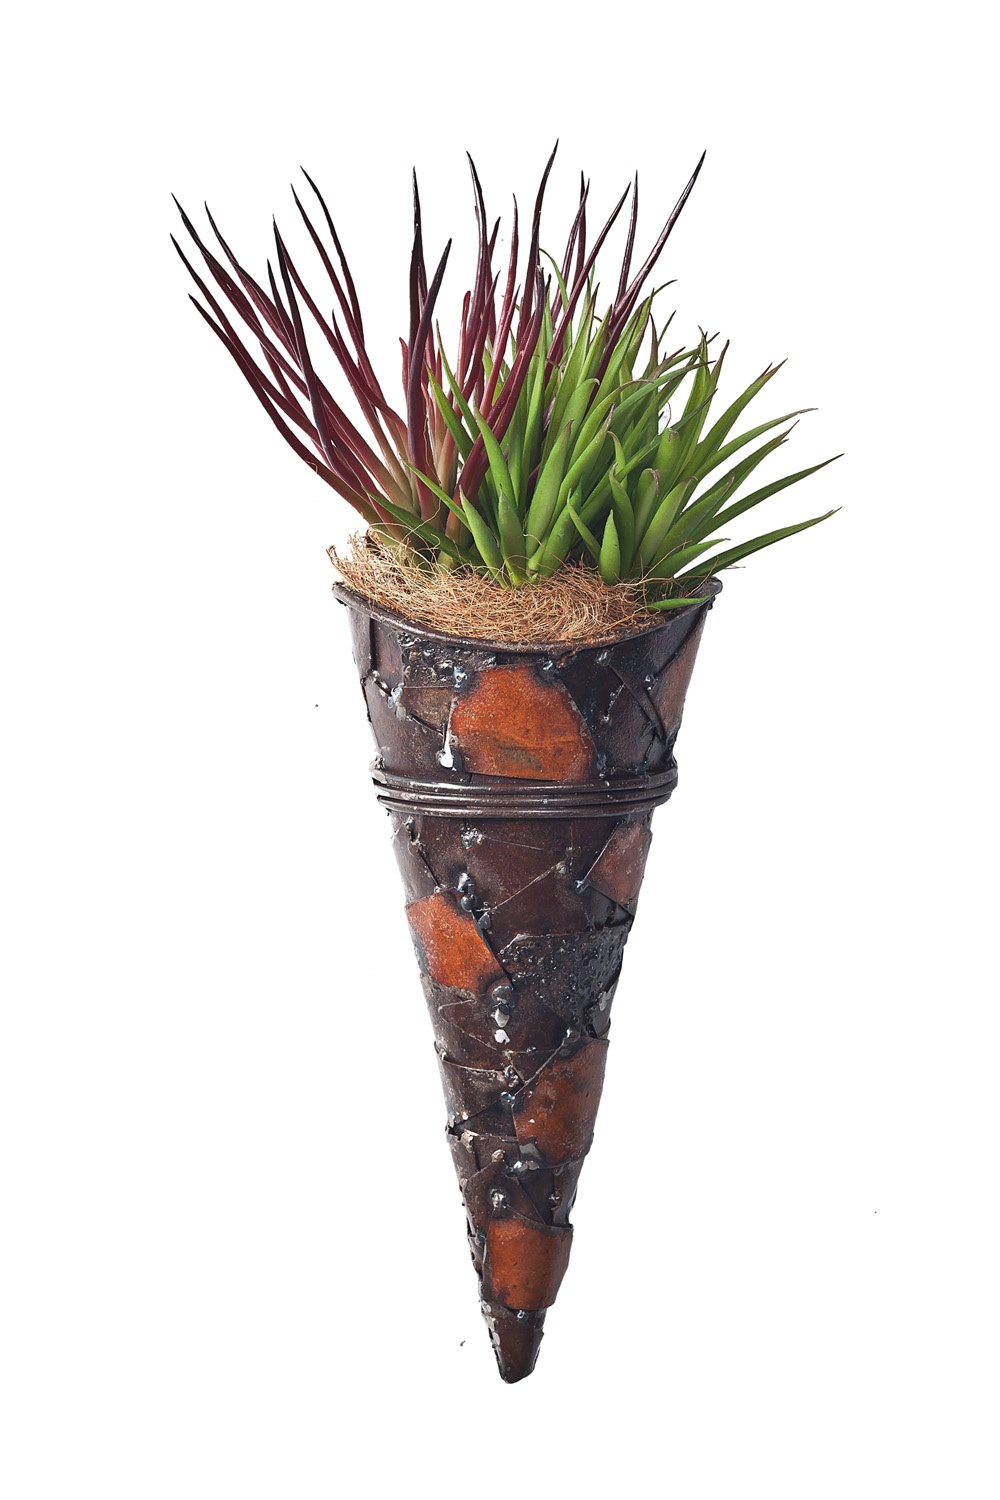 The tapered My Piece of Africa Tribal wall planter from Think Outside www.thinkoutside.biz